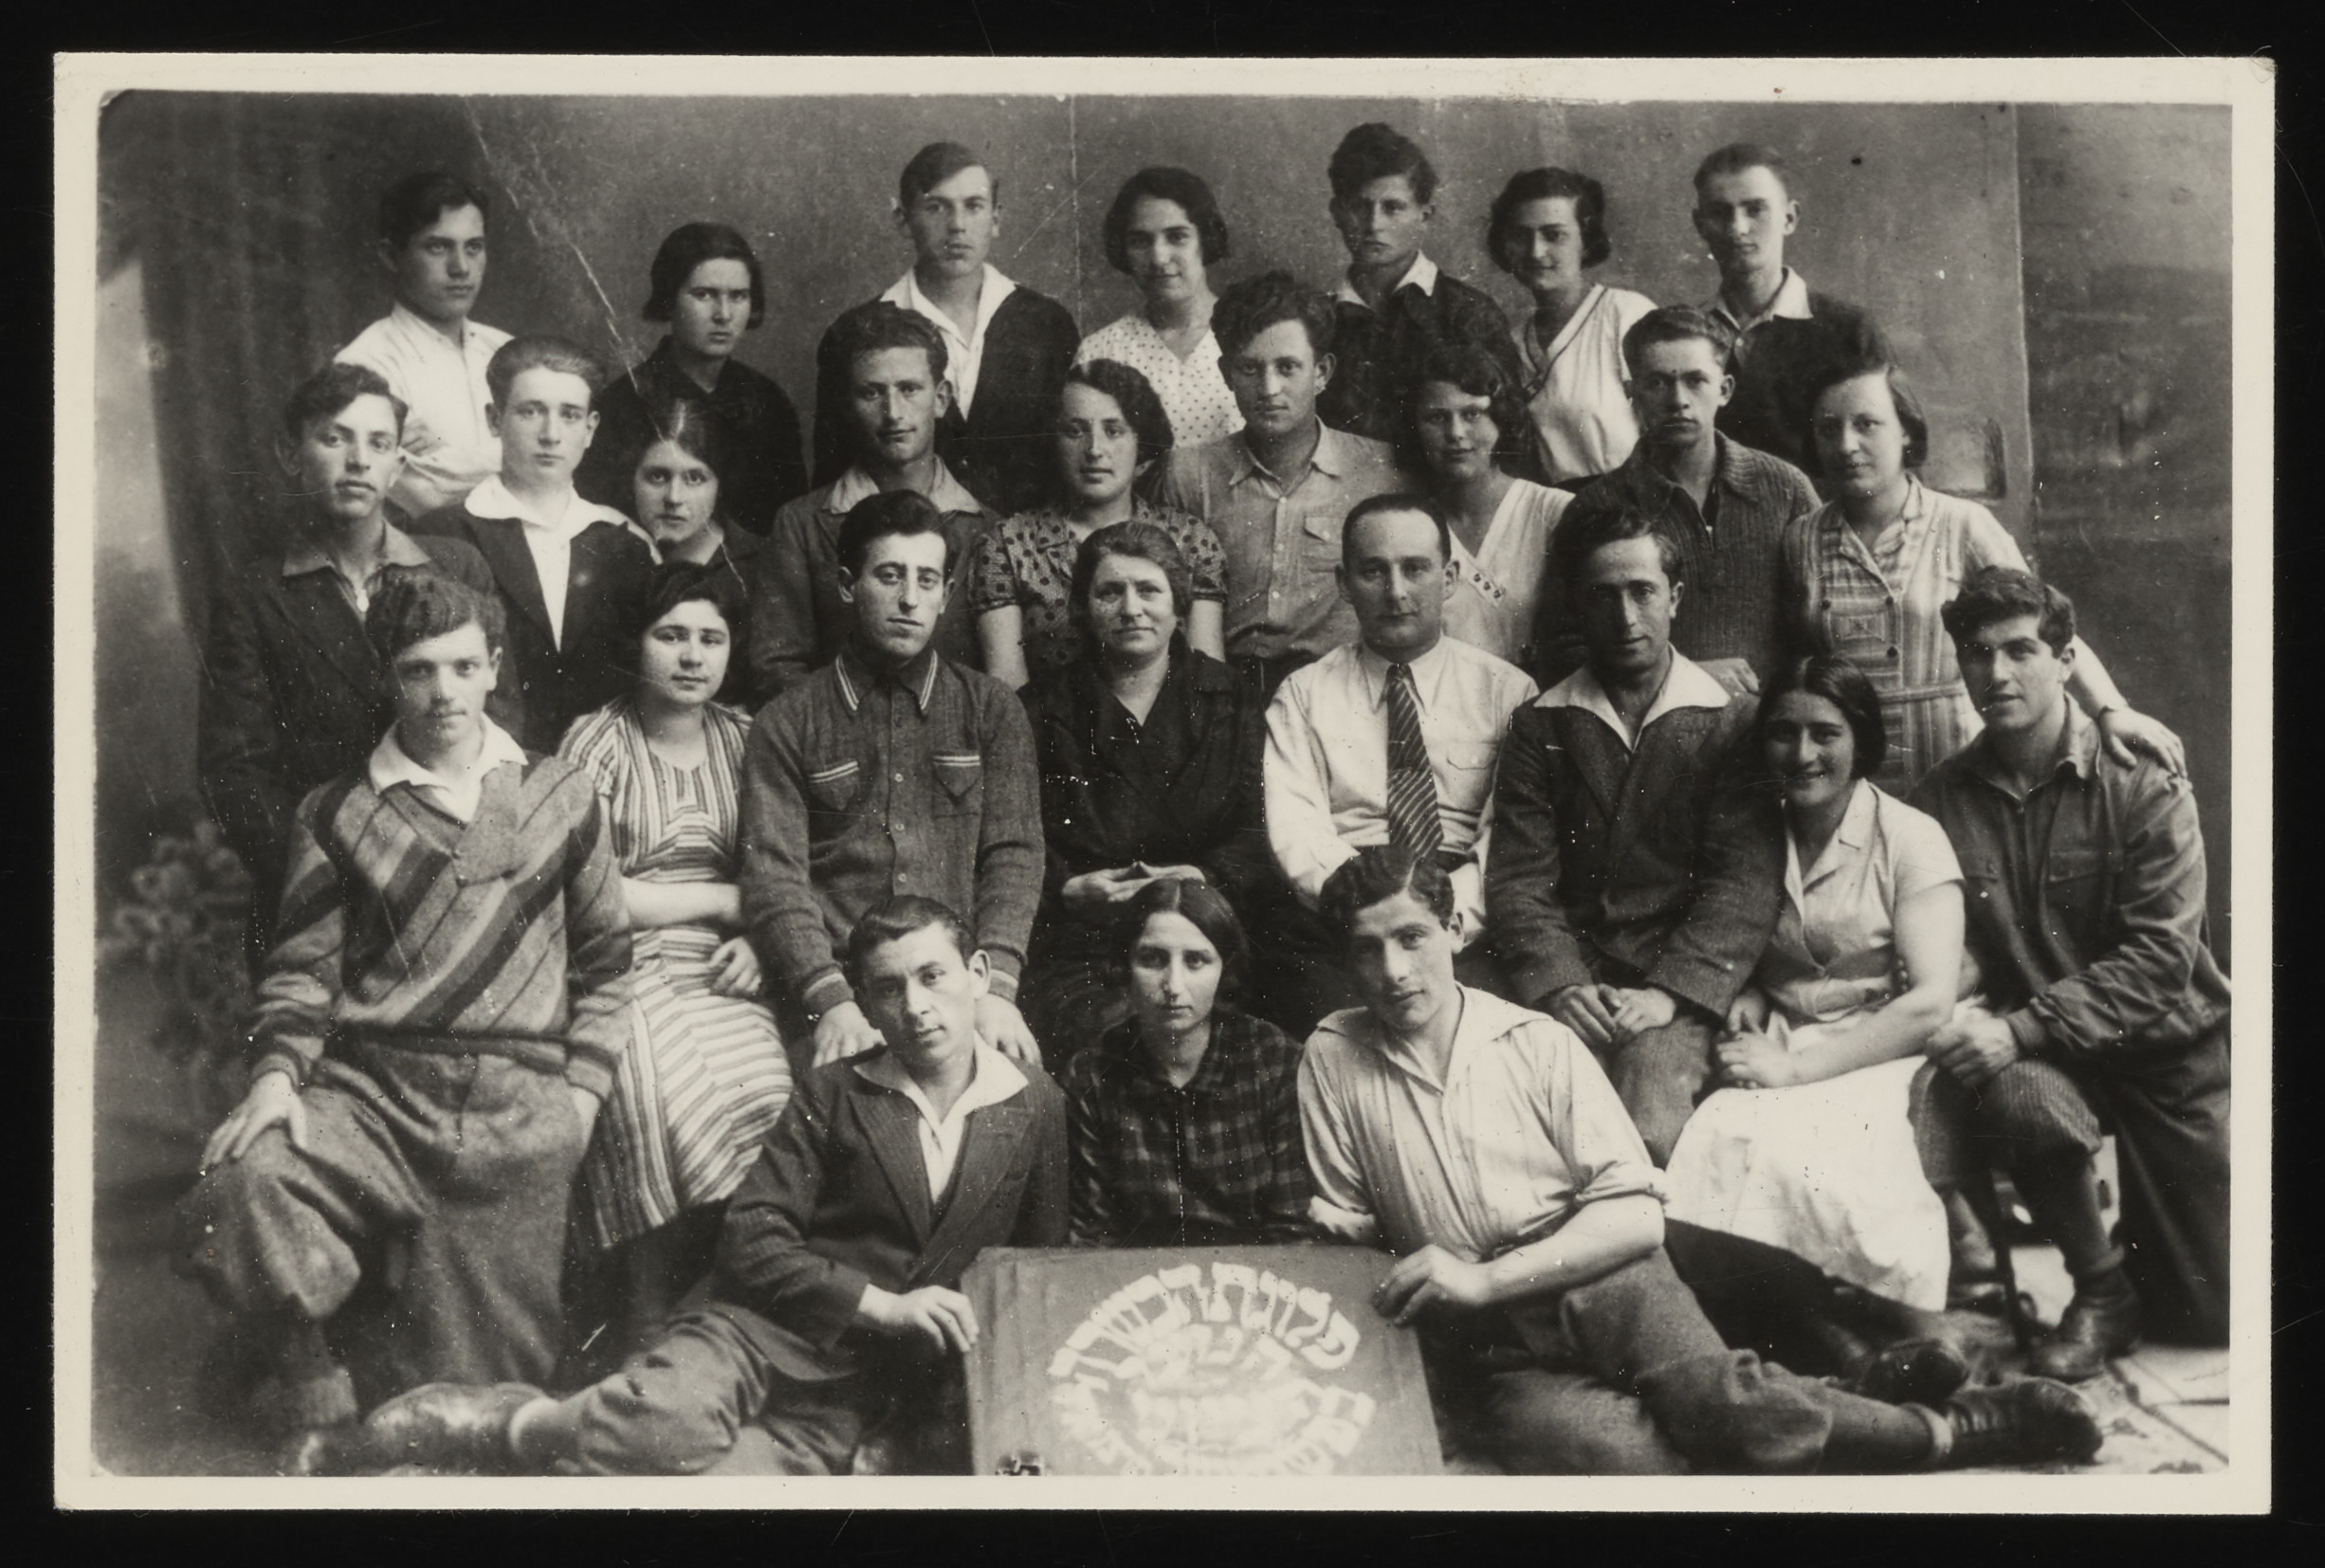 Group portrait of members of a hachshara [Zionist youth collective] in Kolbuszowa.